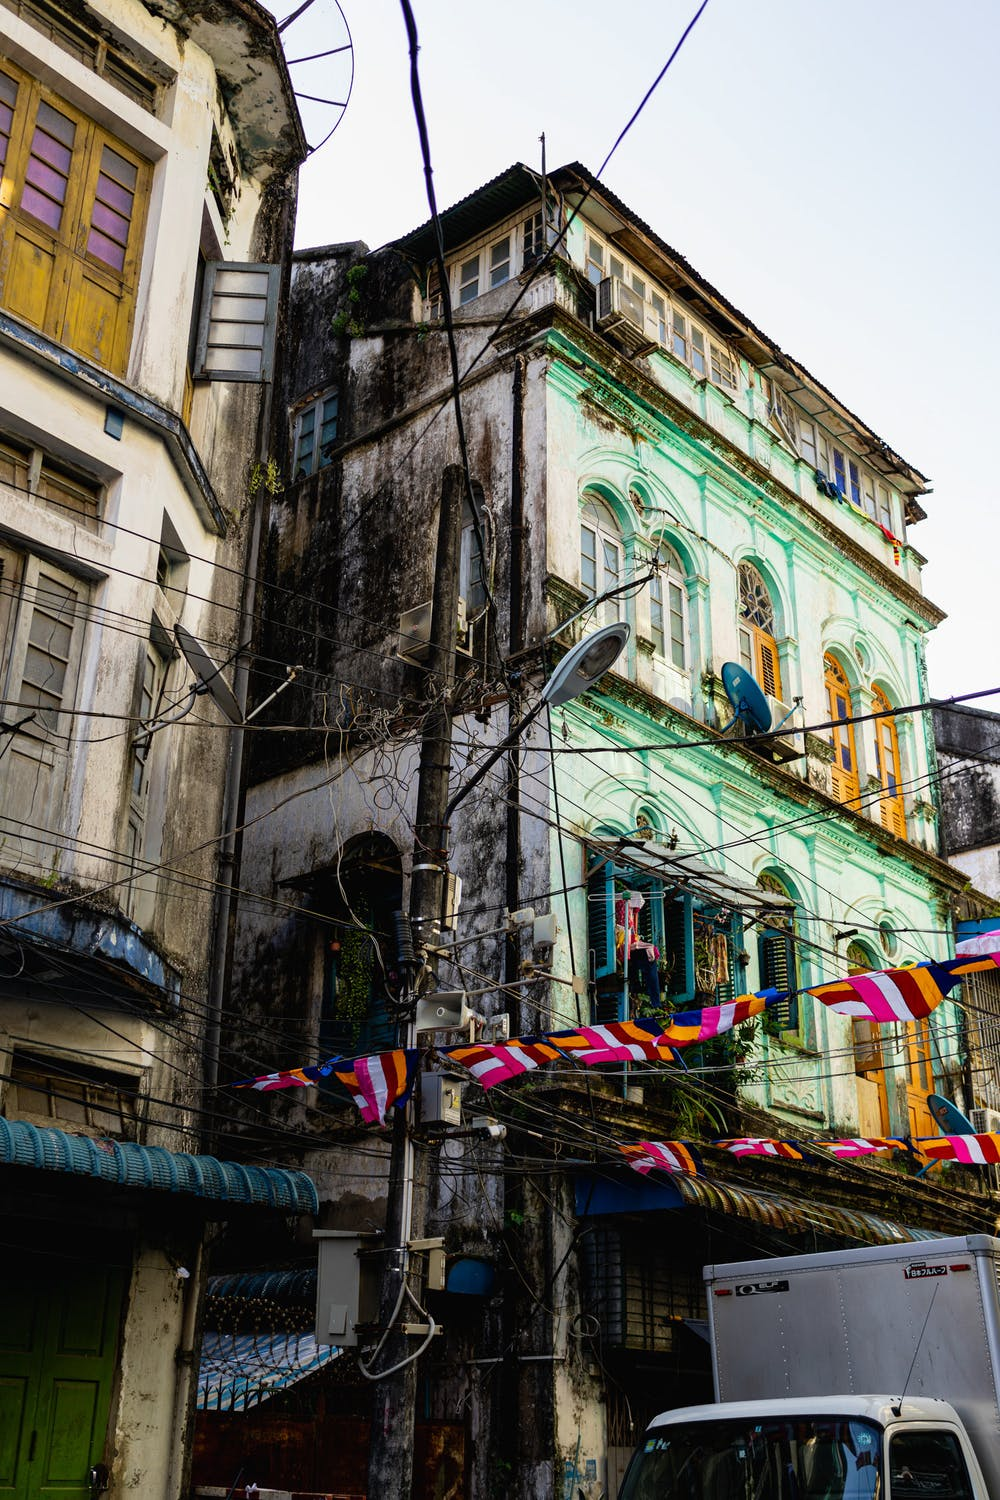 Old colonial architecture on a pastel colored building on a local street in Chinatown of Yangon Myanmar